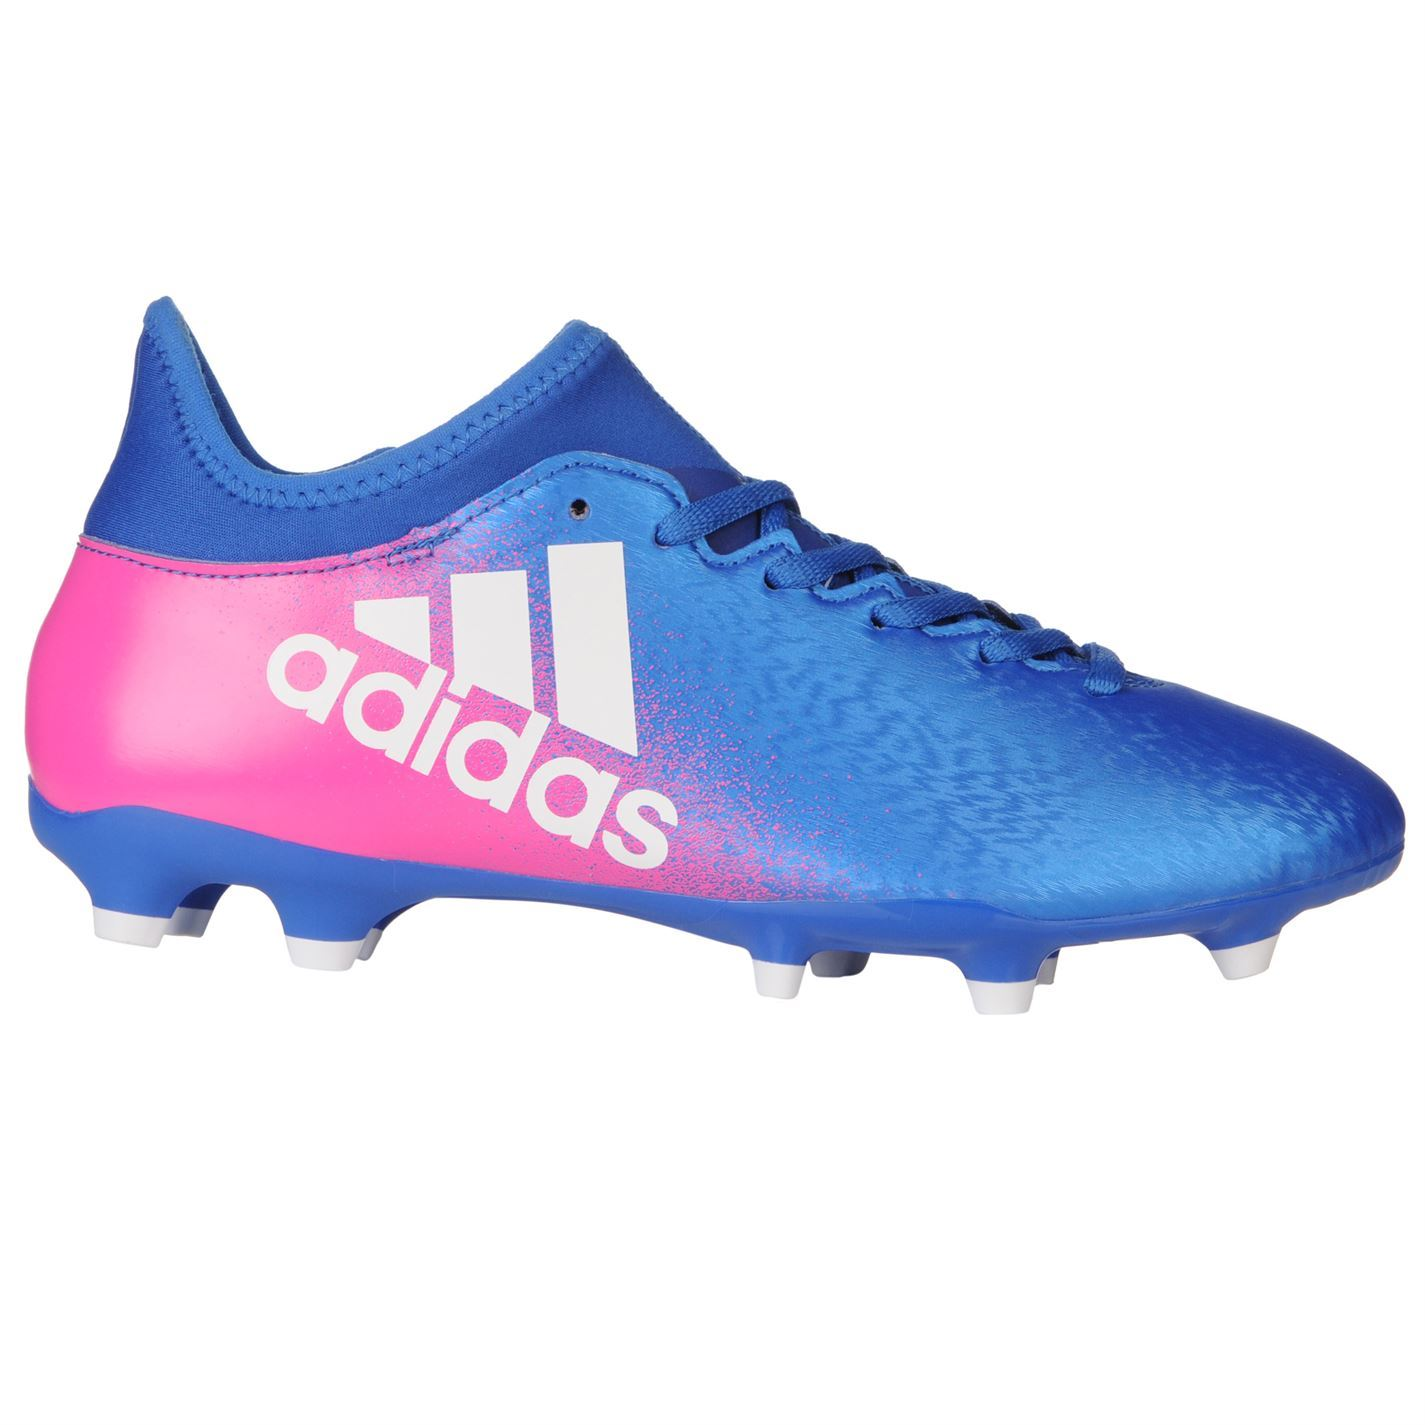 ac91804a152 ... adidas X 16.3 FG Firm Ground Football Boots Mens Blu Wht Pnk Soccer  Cleats ...